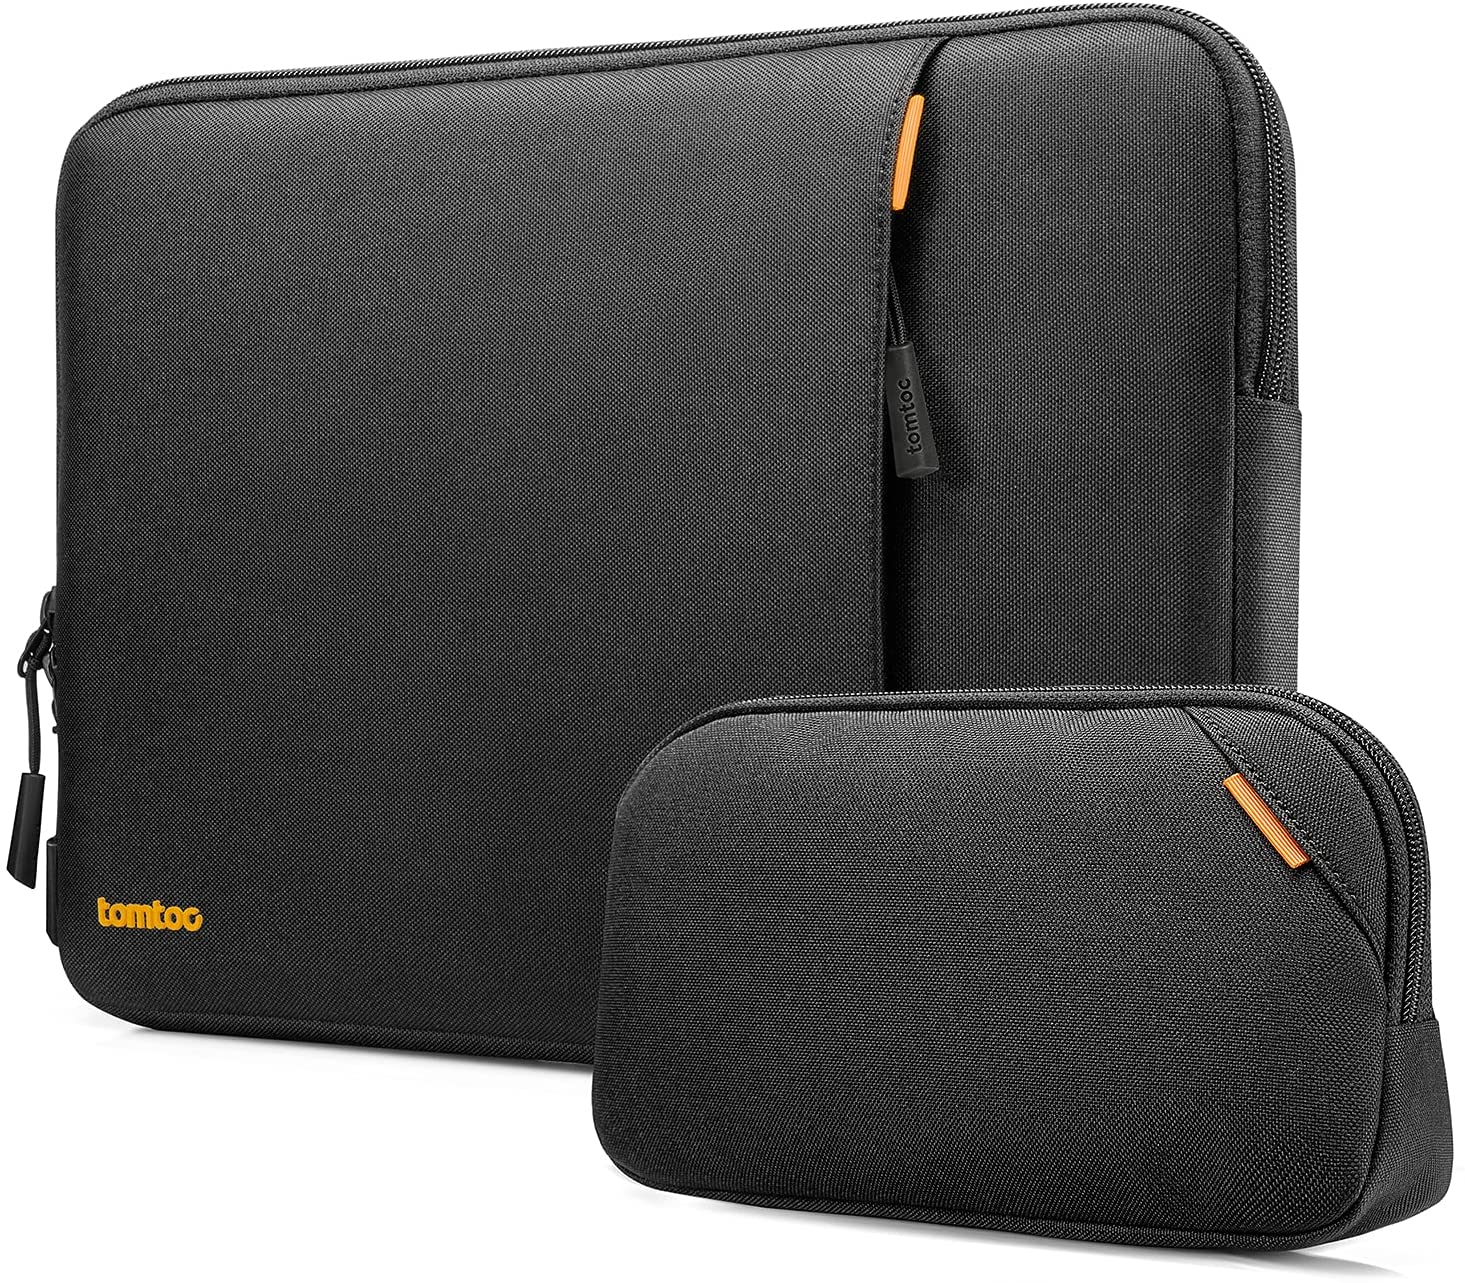 tomtoc Recycled Laptop Sleeve for 15-16 Inch MacBook Pro A2141 A1398, 15 Inch Surface Book 3/2, The New Razer Blade 15, ThinkPad X1 Extreme Gen 2, 360 Protective Notebook Case Bag with Accessory Pouch